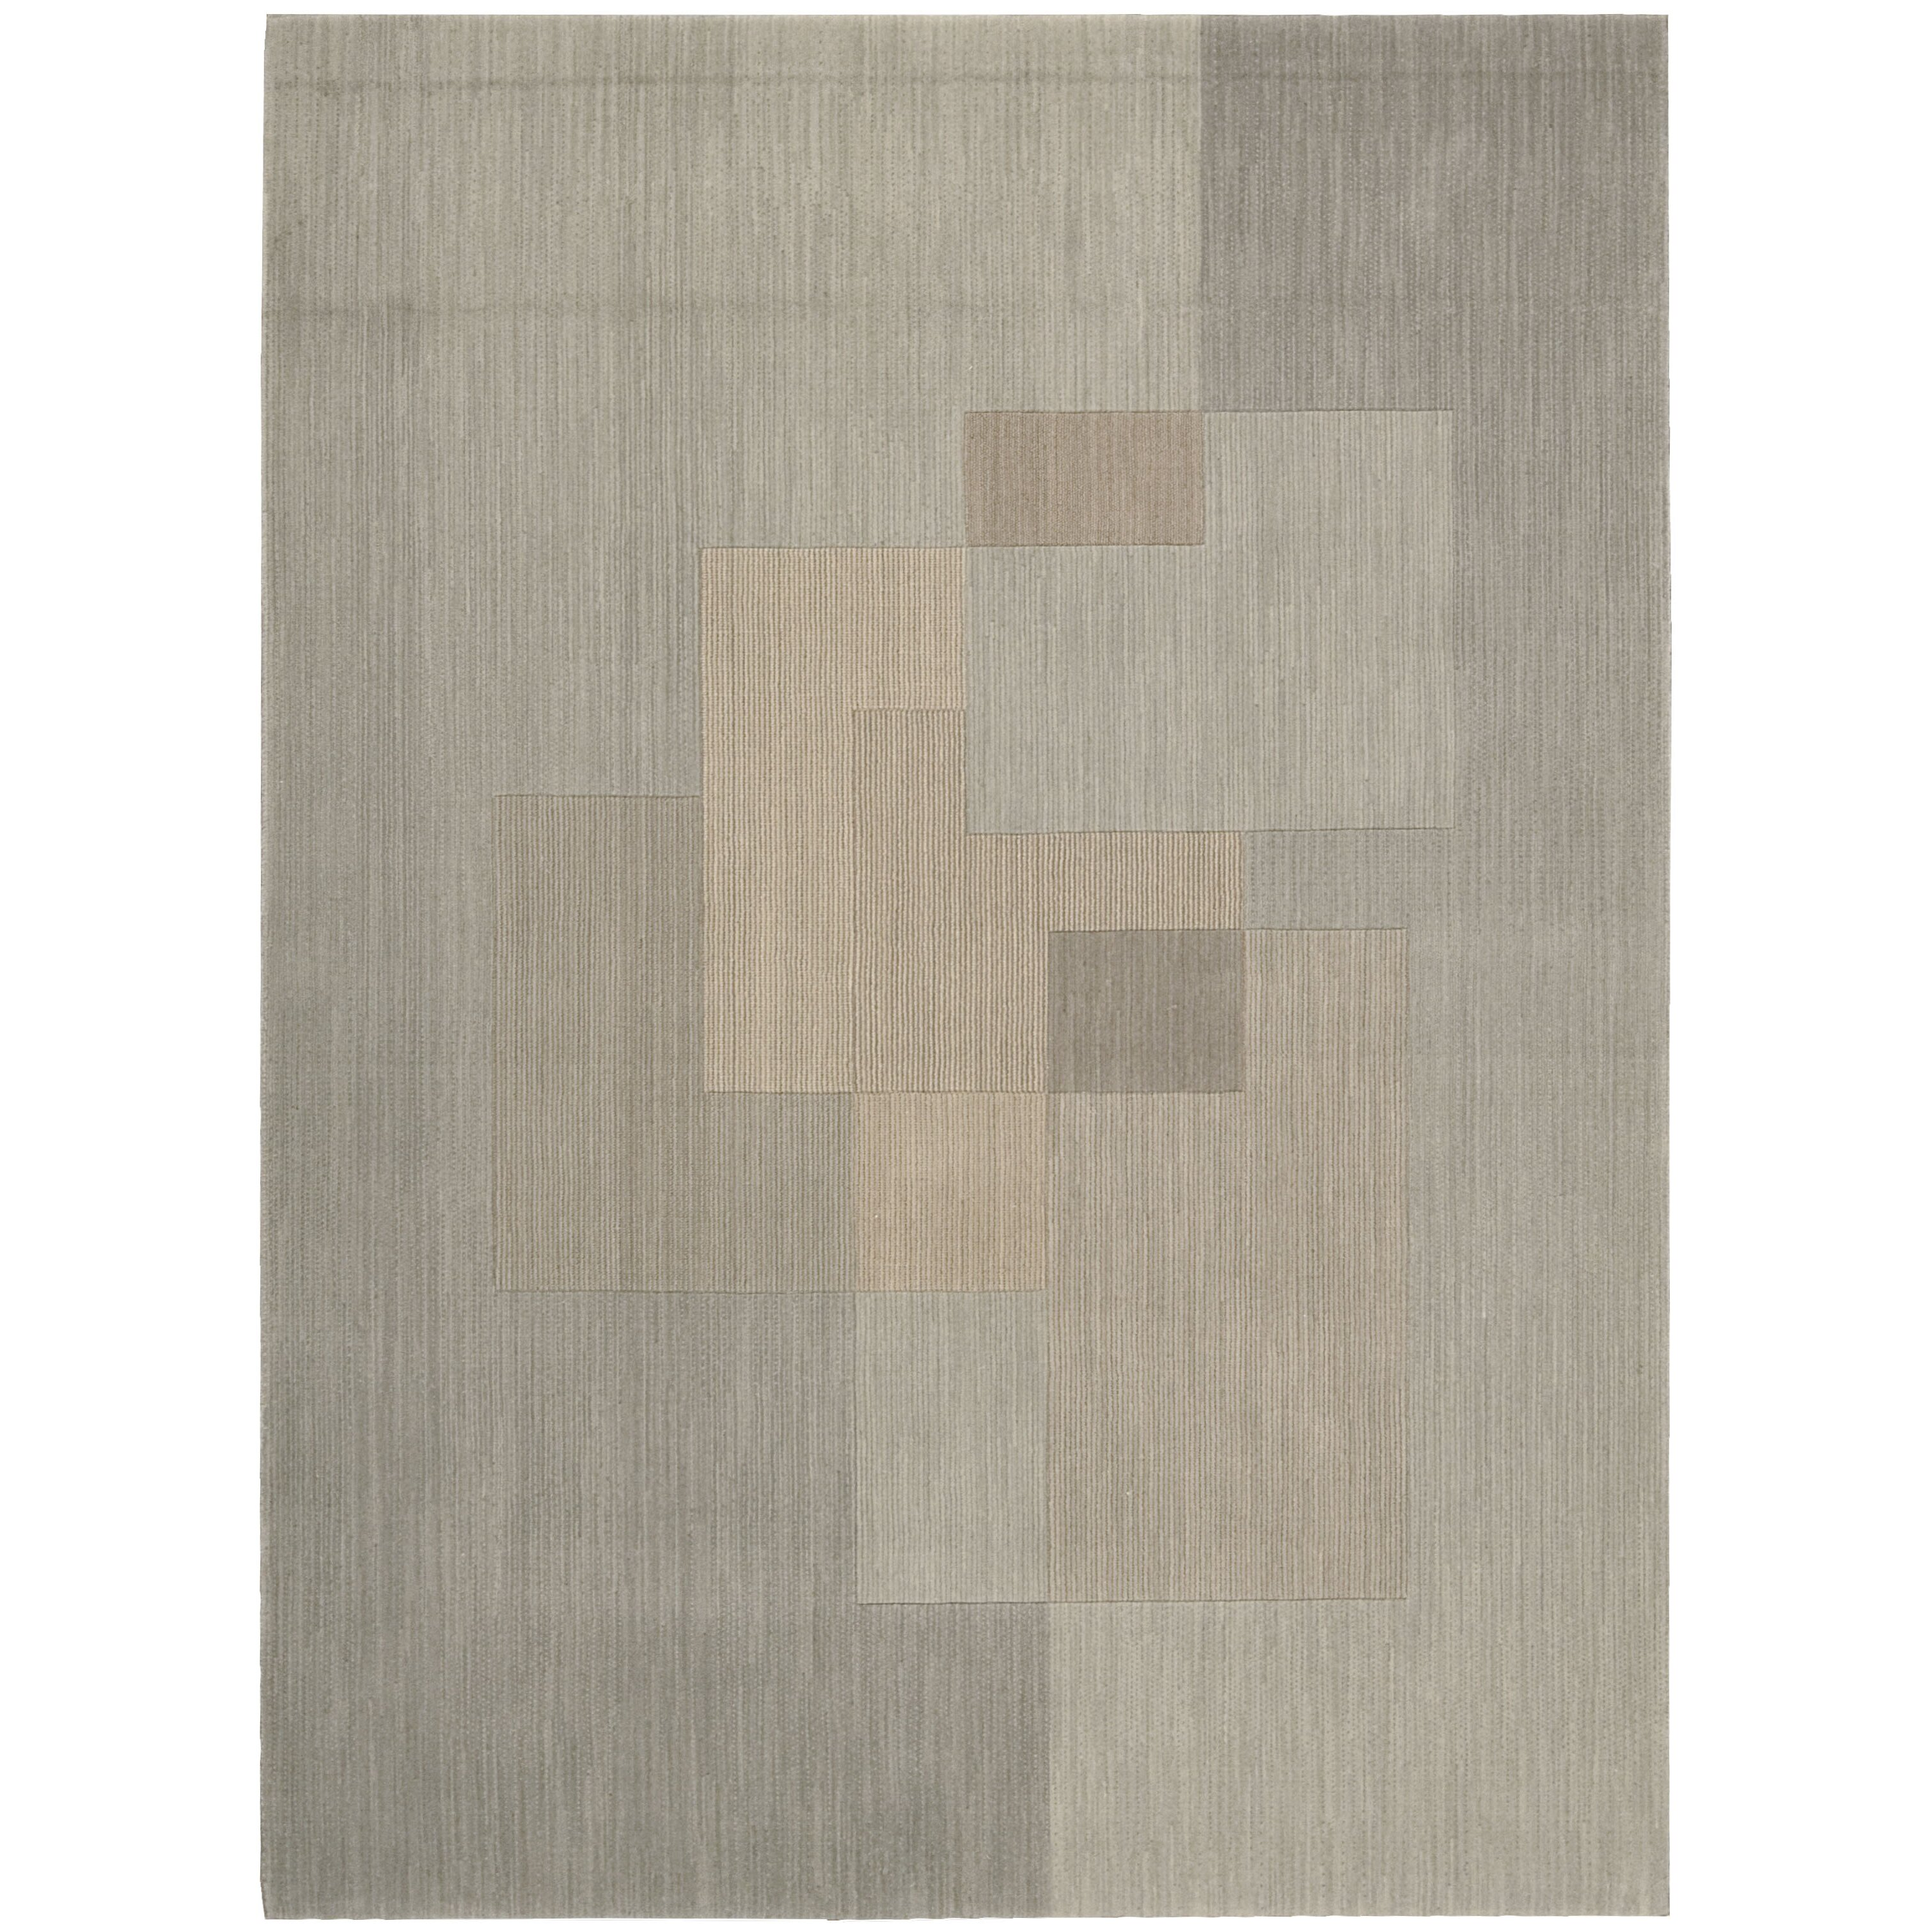 select rug  roselawnlutheran - calvin klein home rug collection loom select overlay drift area rug